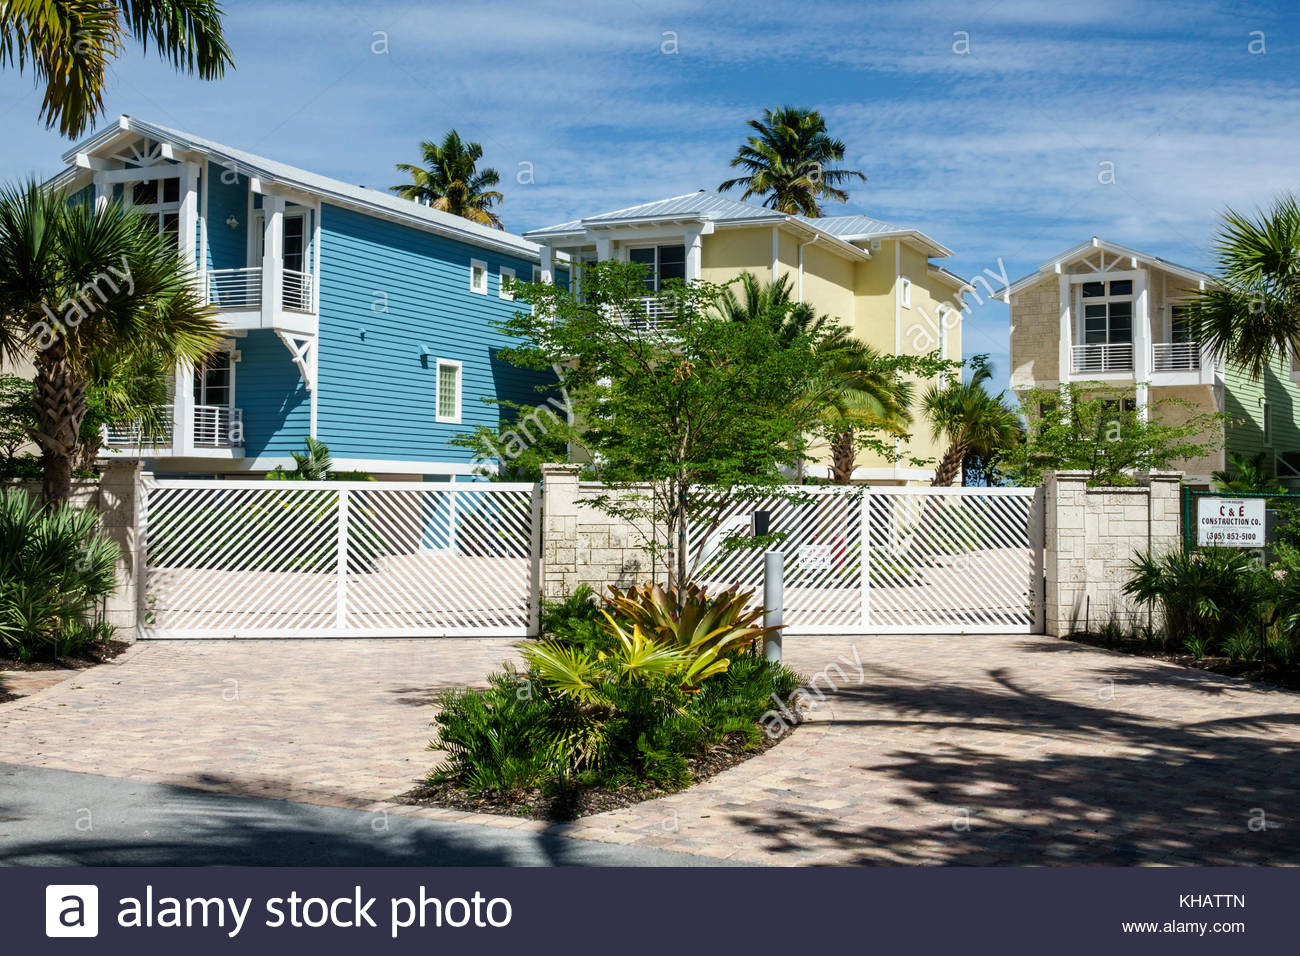 Upper Matecumbe Key Homes For Sale